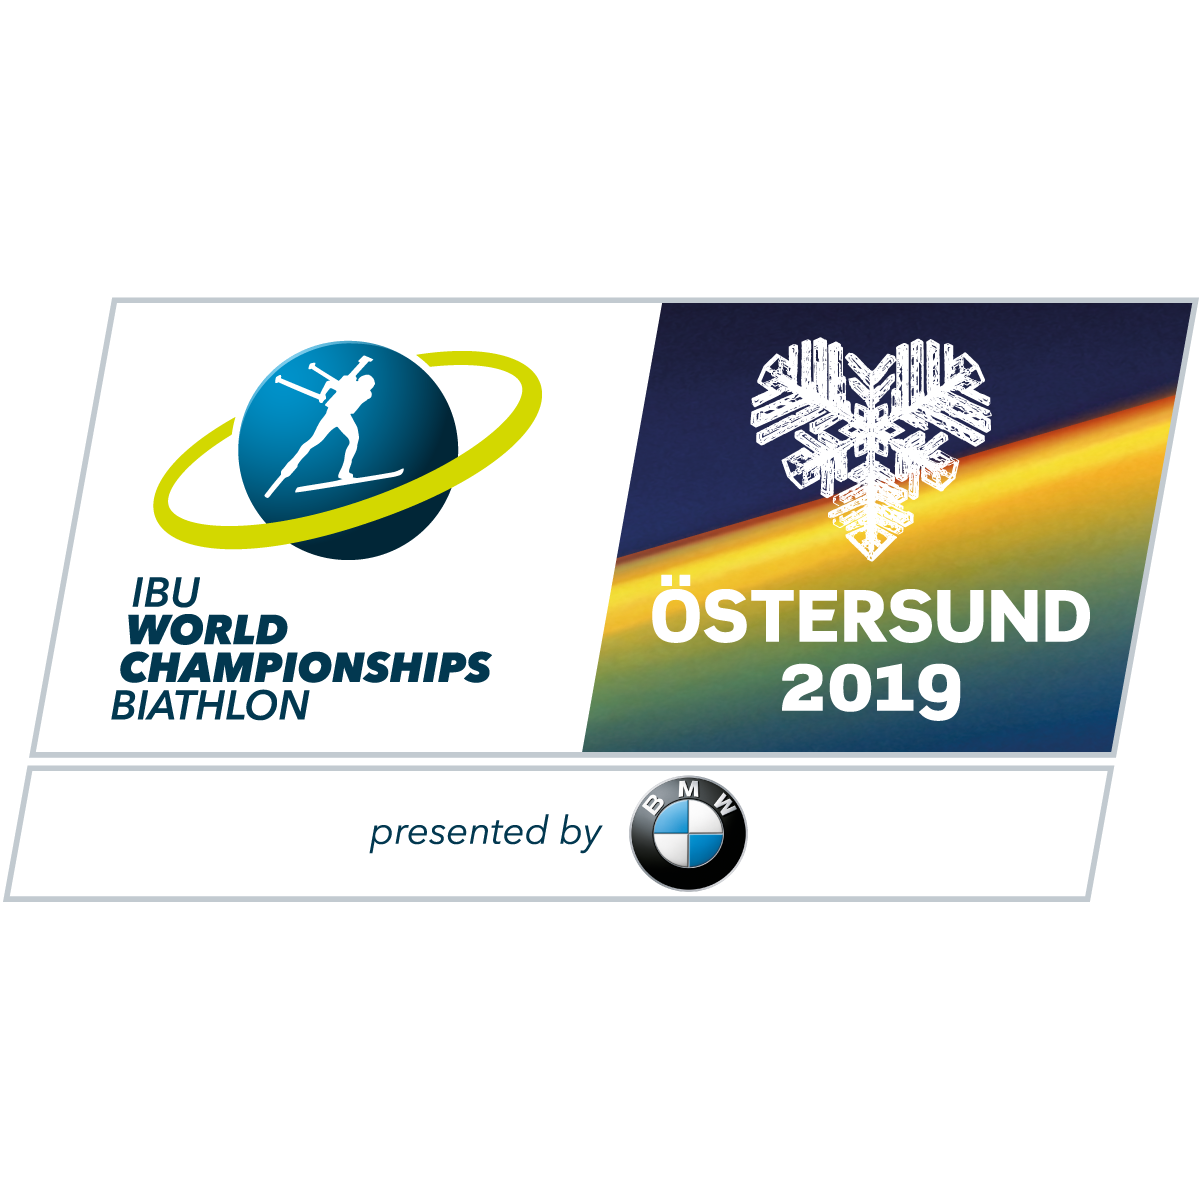 2019 Biathlon World Championships